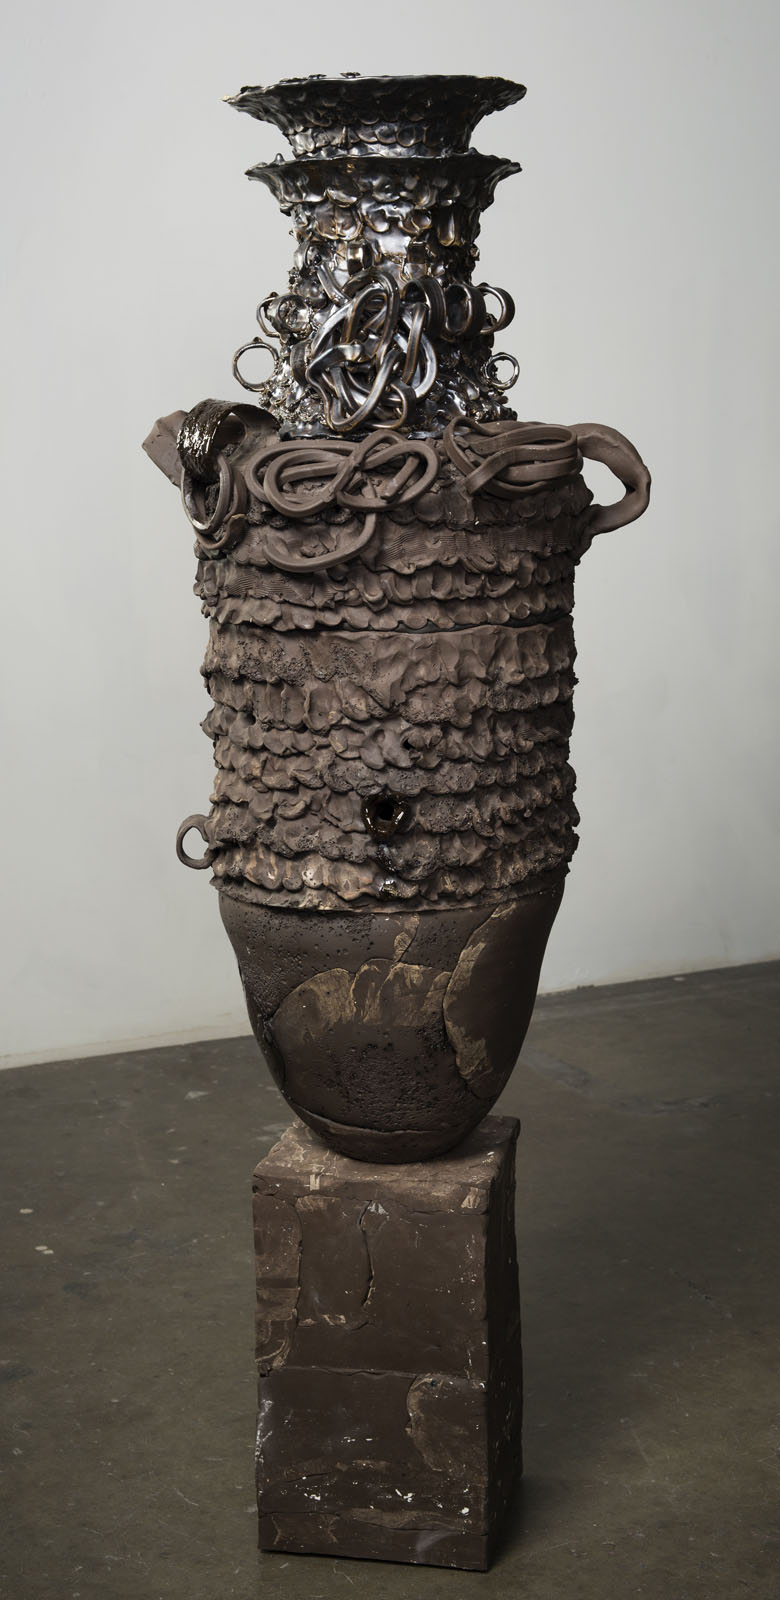 P.Pot #2, Sugar   2017  Brown earthenware, glaze, grog, magic sculpt, pc-7, epoxy, hardware  57.5 x 19.5 x 18 inches